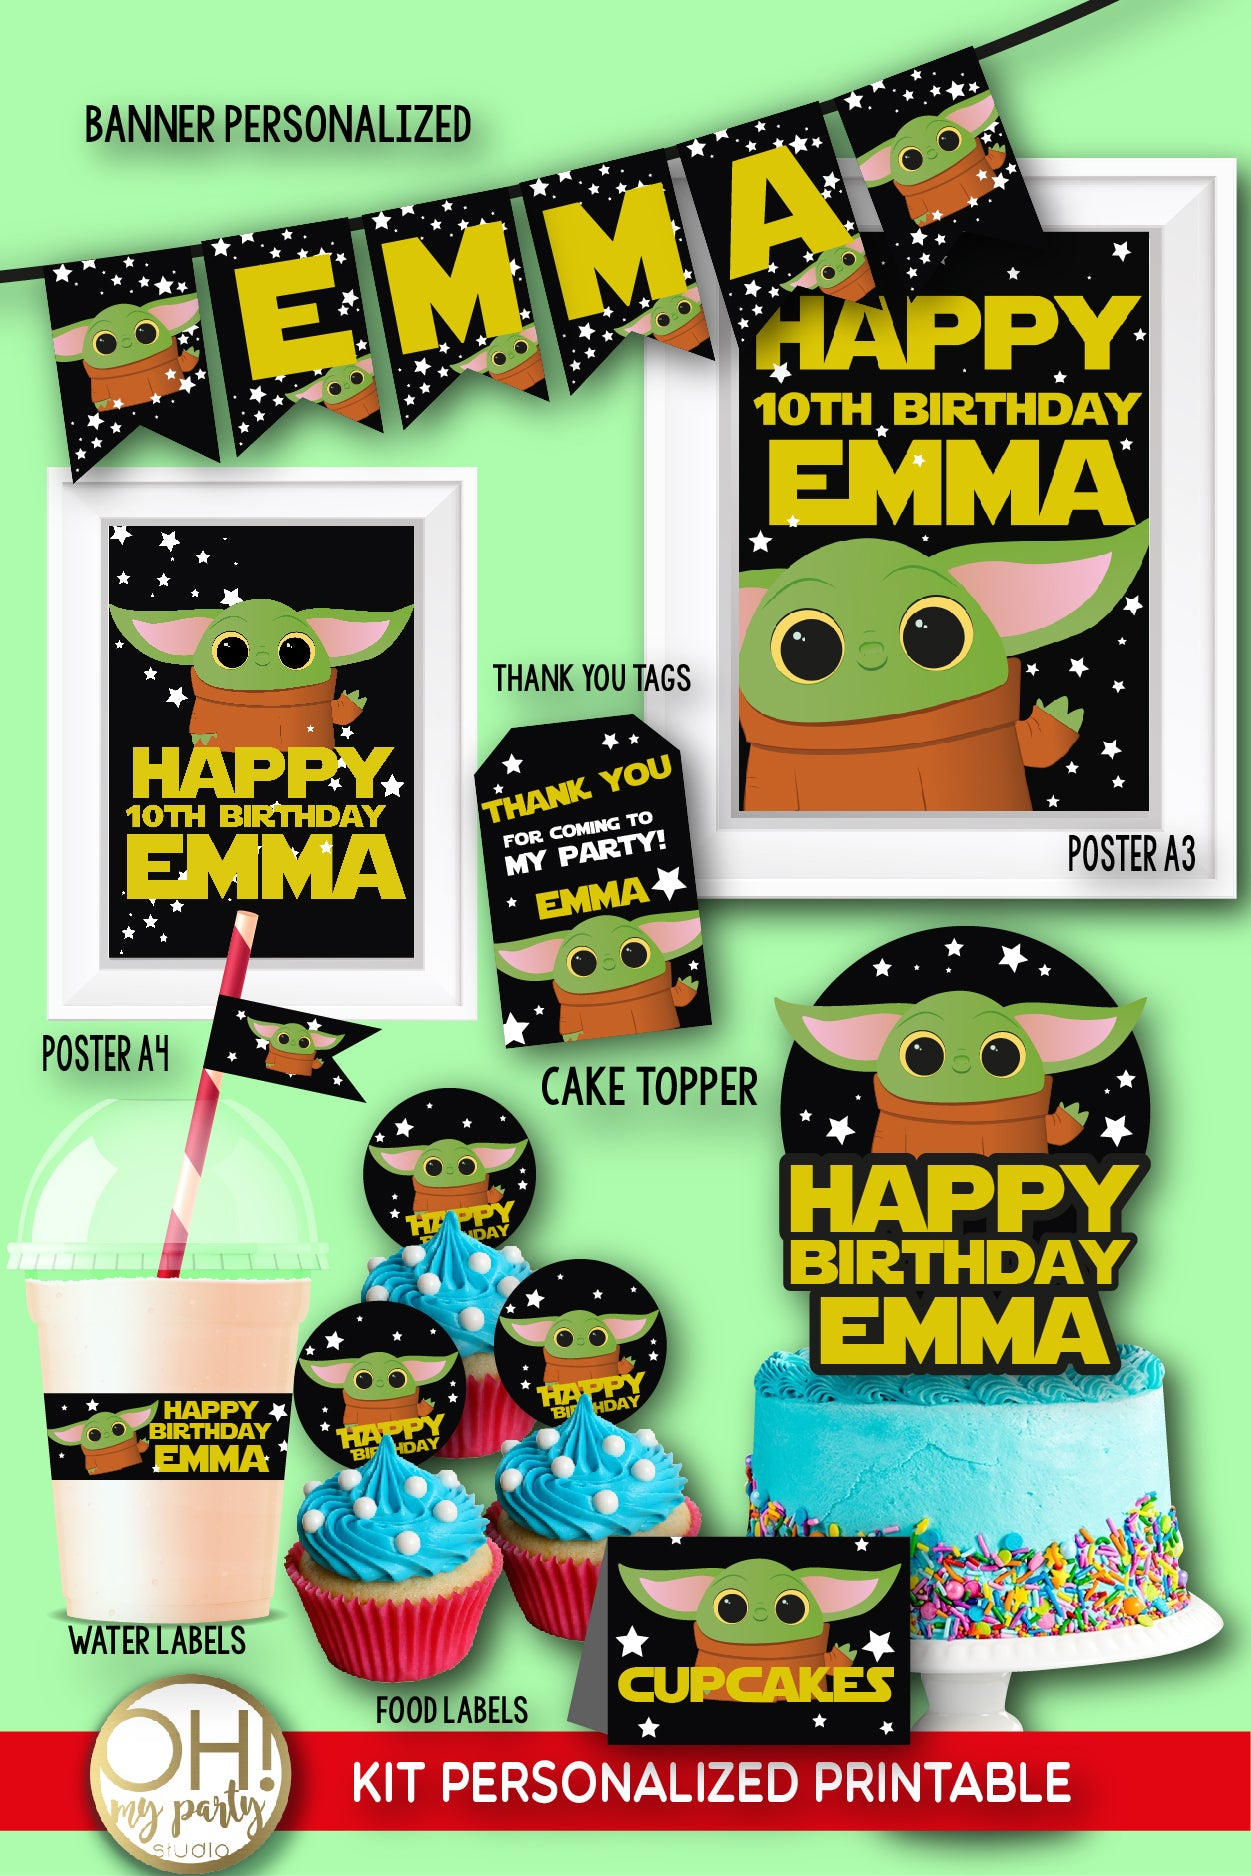 BABY YODA PARTY IDEAS, BABY YODA PARTY DECORATIONS, BABY YODA PARTY SUPPLIES, BABY YODA PARTY, BABY YODA BIRTHDAY, BABY YODA BANNER, BABY YODA CAKE, THE MANDALORIAN PARTY DECORATIONS, THE MANDALORIAN PARTY IDEAS, THE MANDALORIAN BIRTHDAY PARTY, THE MANDALORIAN PARTY PRINTABLES, THE MANDALORIAN PARTY SUPPLIES, BABY YODA BIRTHDAY PARTY SUPPLIES, BABY YODA BIRTHDAY PARTY DECORATIONS